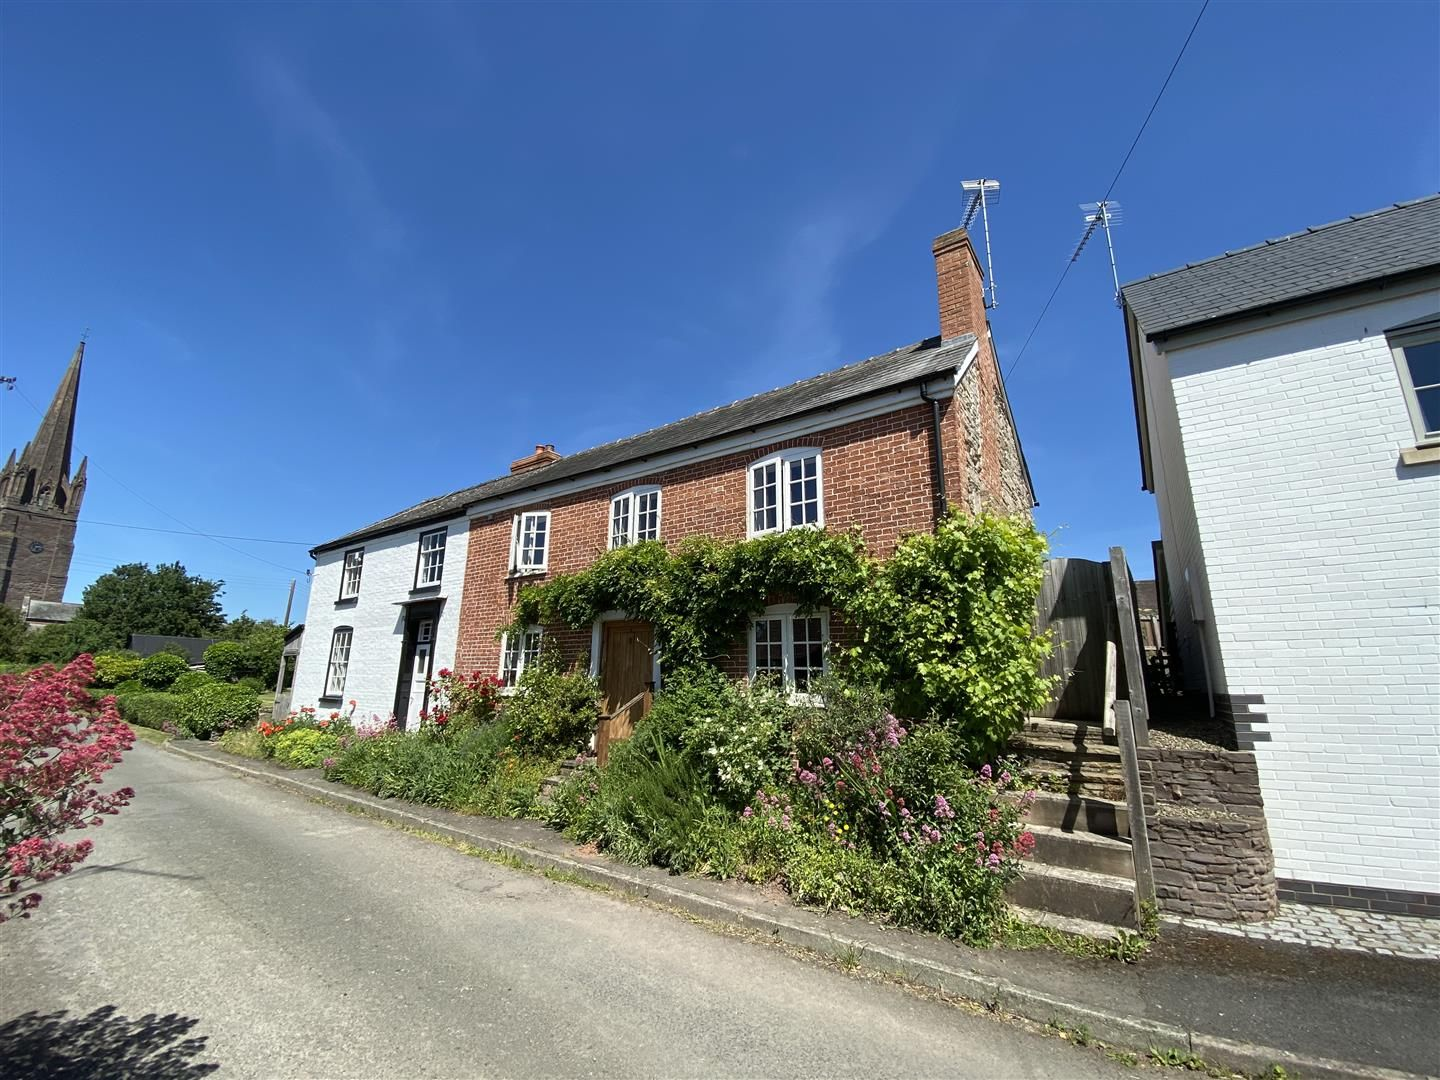 3 bed semi-detached for sale in Weobley, HR4